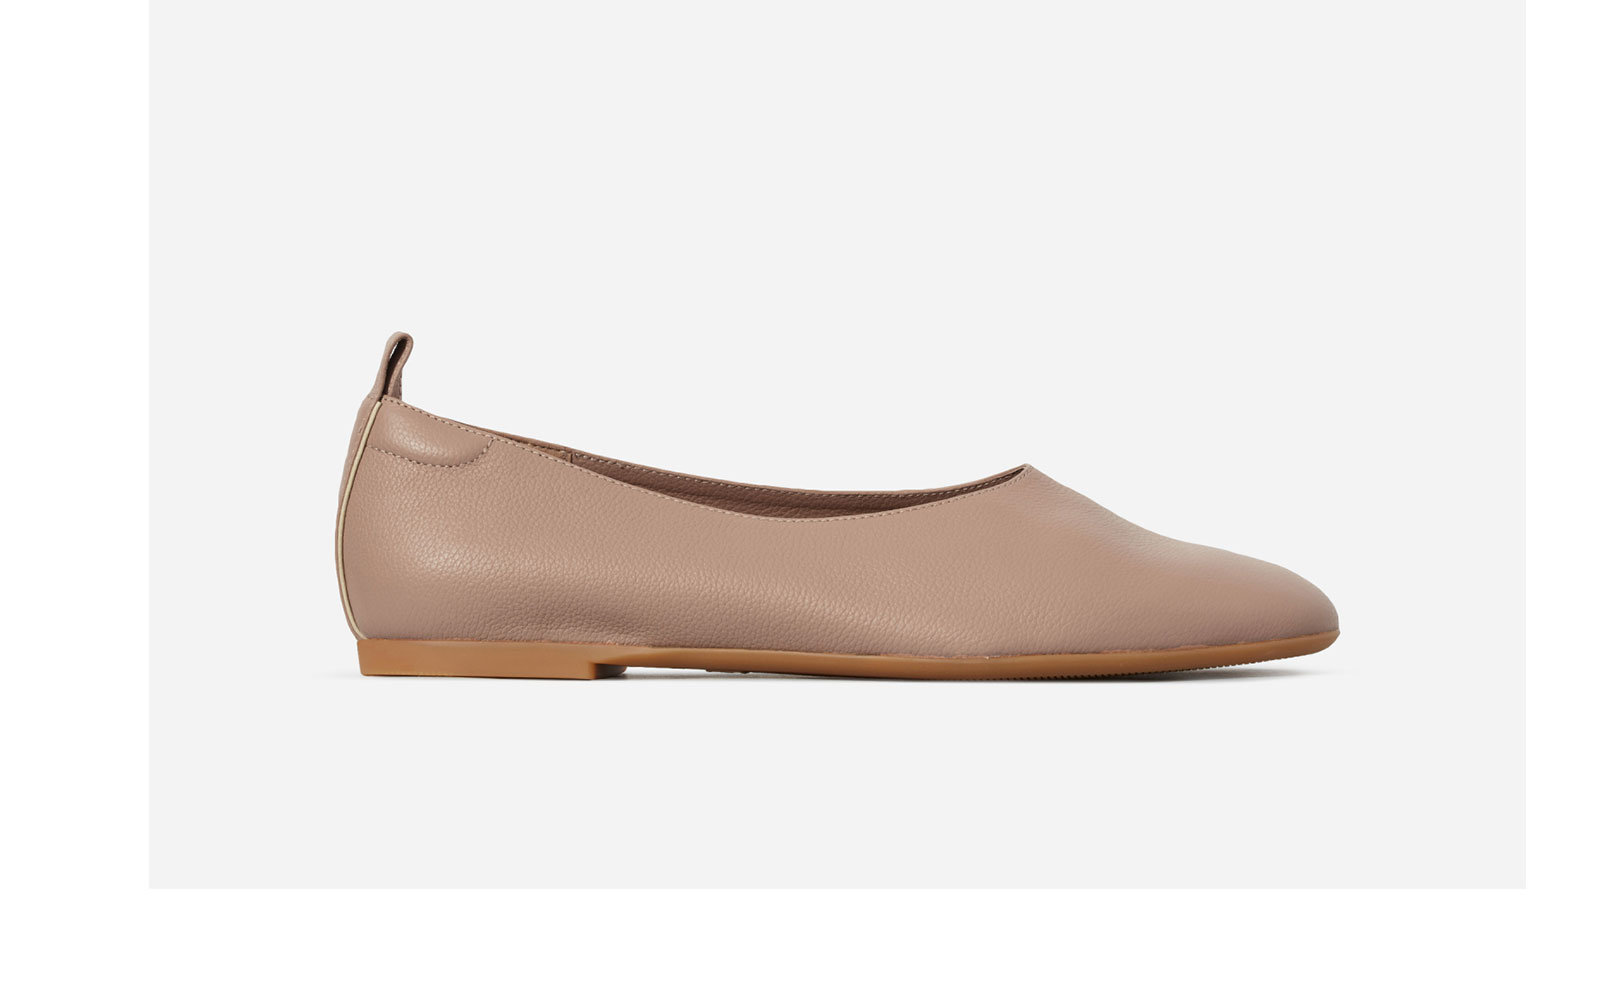 The Ballet Flat: Everlane Day Glove